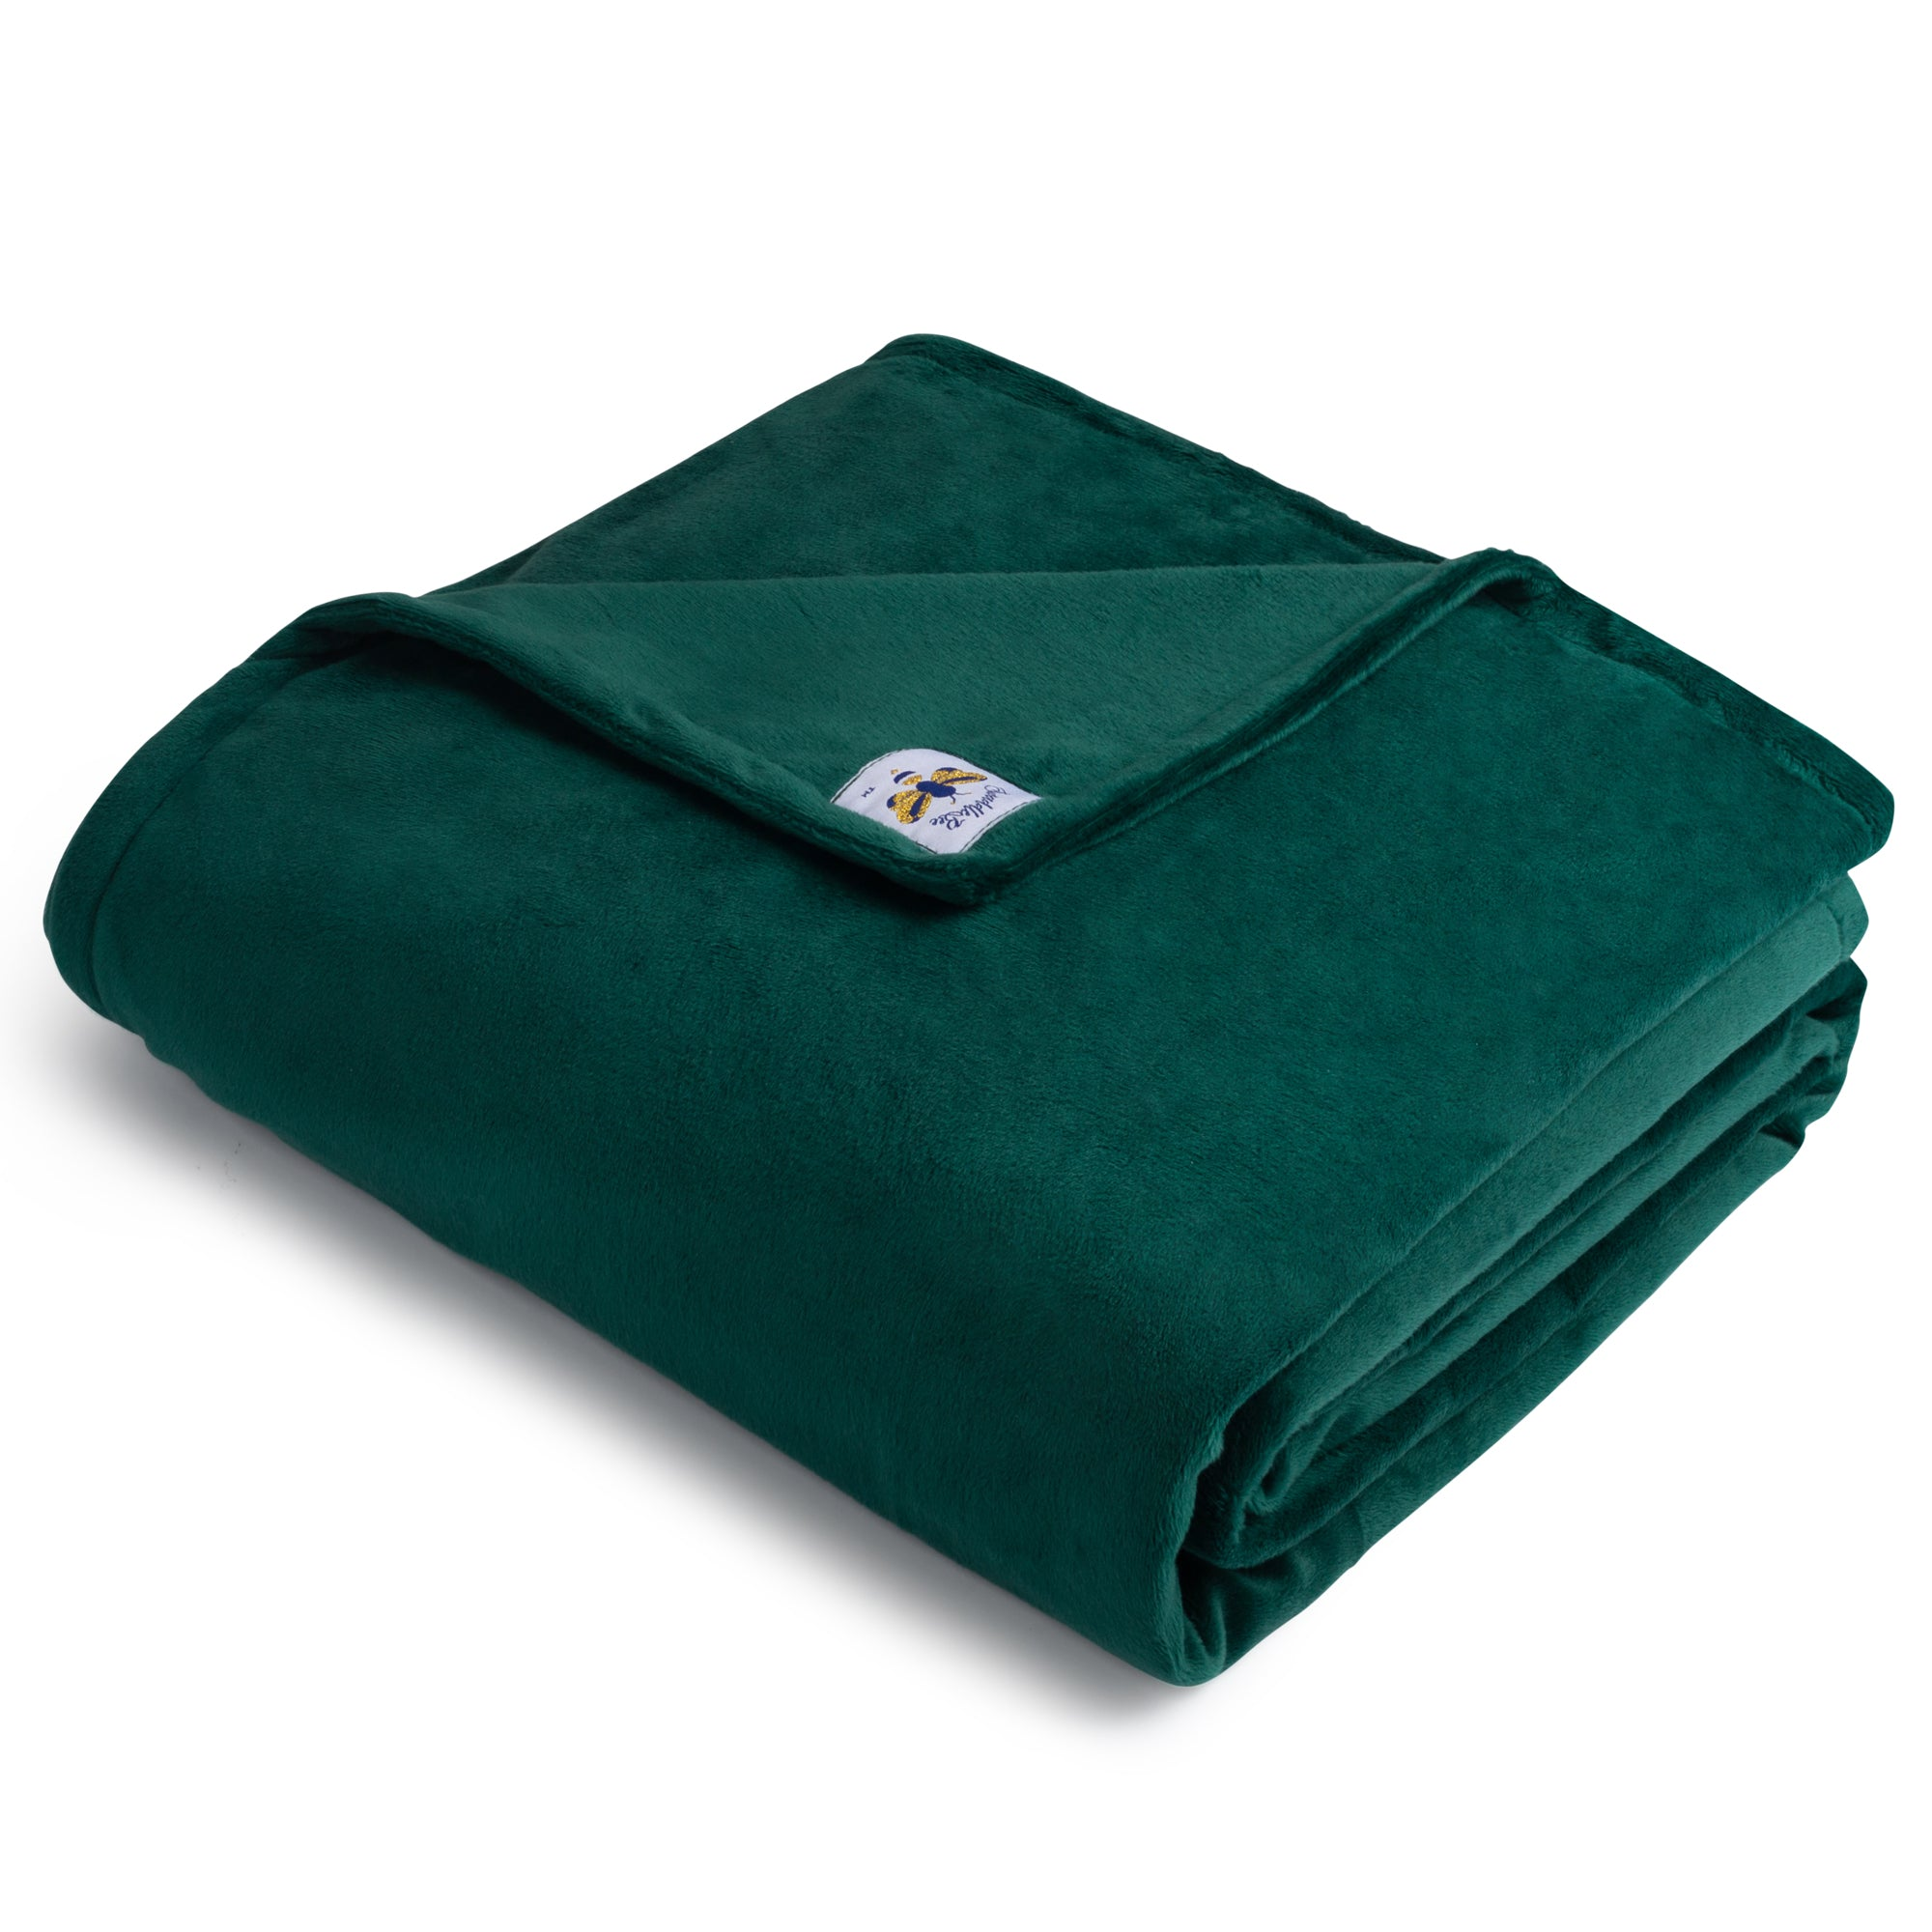 BiggerBee Minky Throw Blanket Forest Green *** IN STOCK***